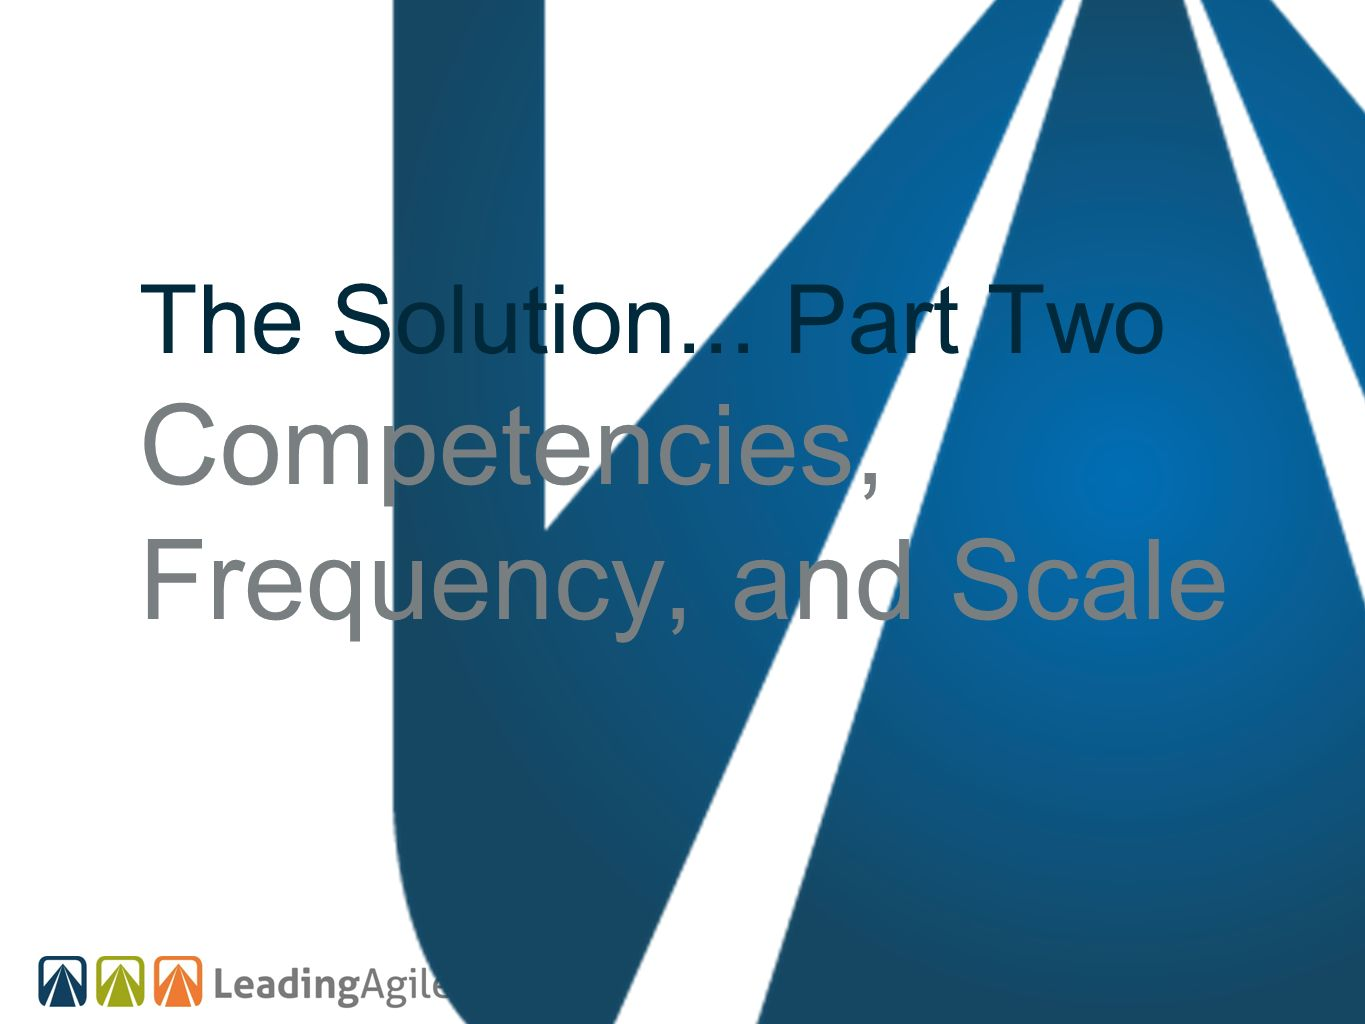 The Solution... Part Two Competencies, Frequency, and Scale